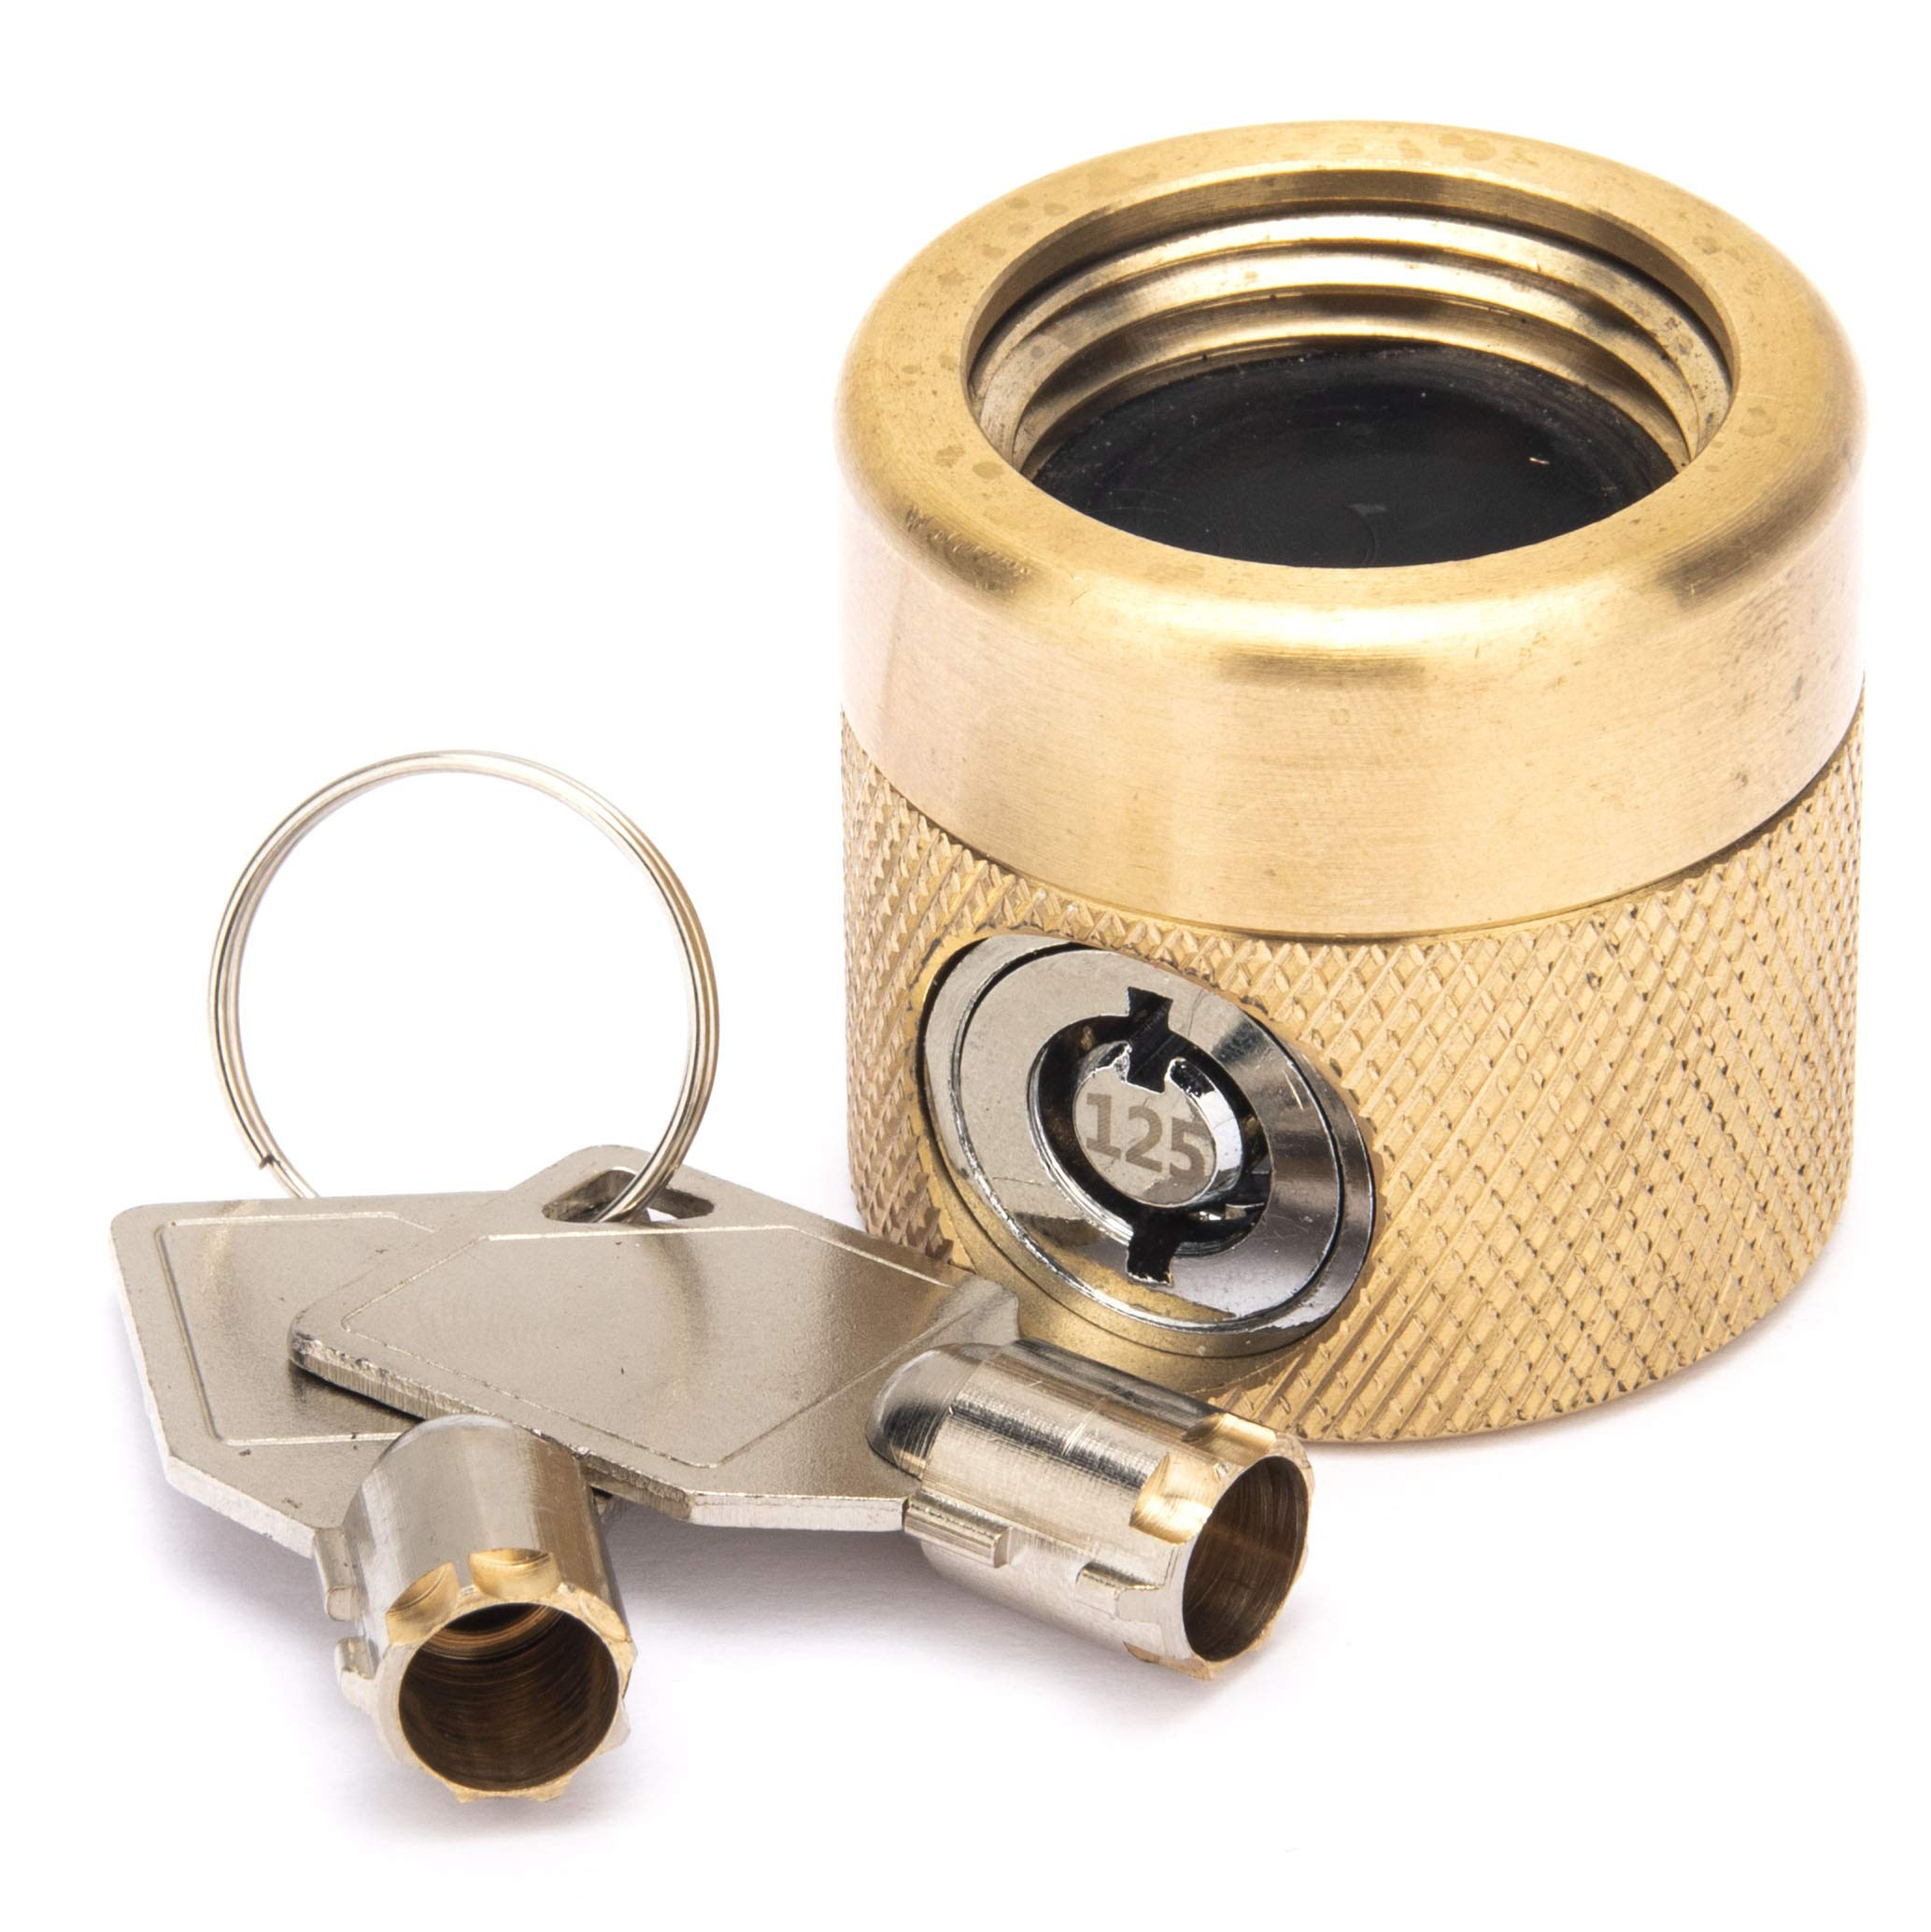 Flow Security Systems | The FaucetLock | Heavy Duty Brass Construction | Prevents Water Theft & Secures Outdoor Bibbs | Promotes Water Conservation | Keyed The Same | FFS 50 | 1 Pack